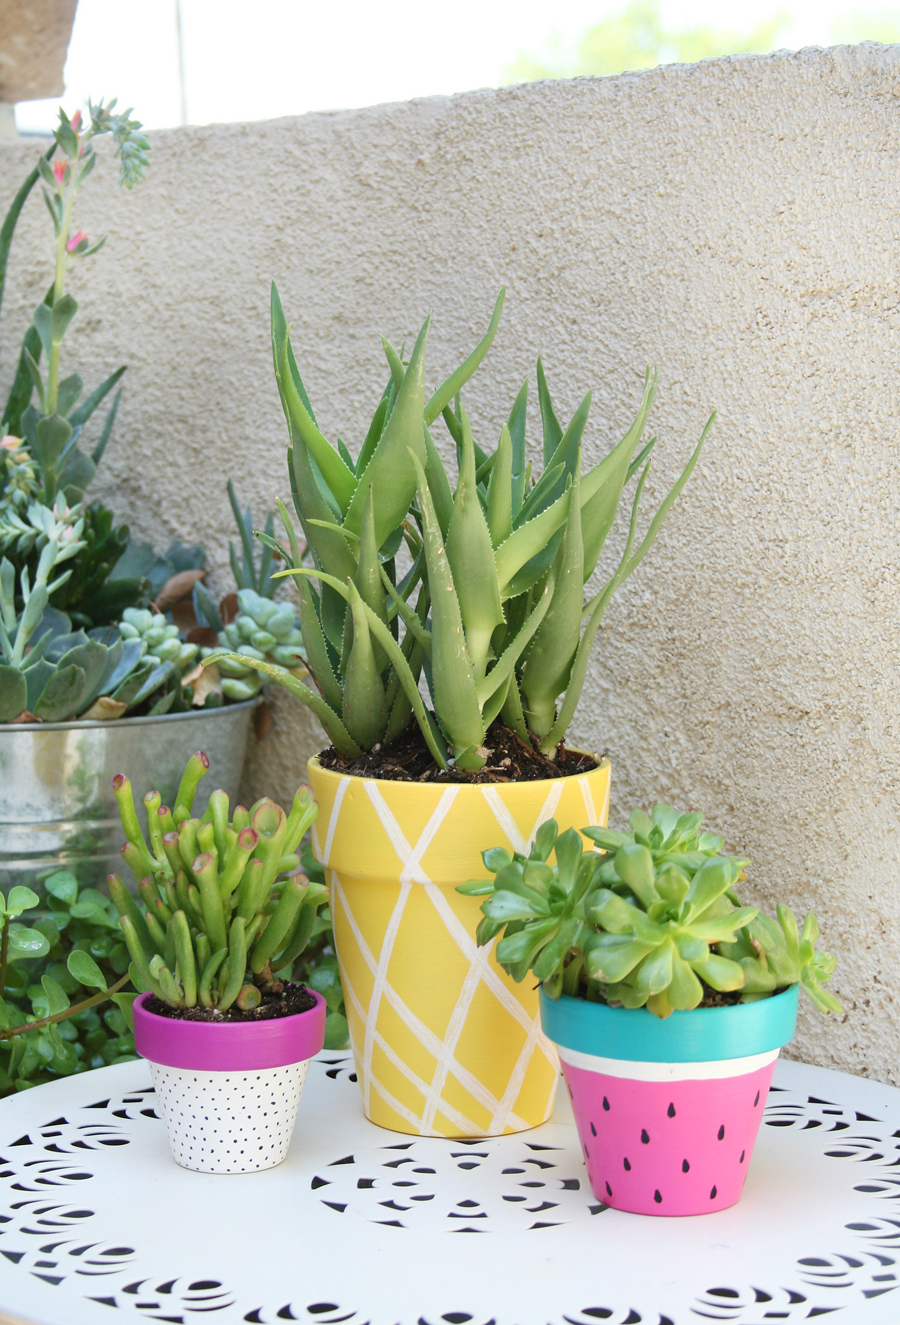 summer diy an appetite artsy blocking dsc nef planters color painted planter